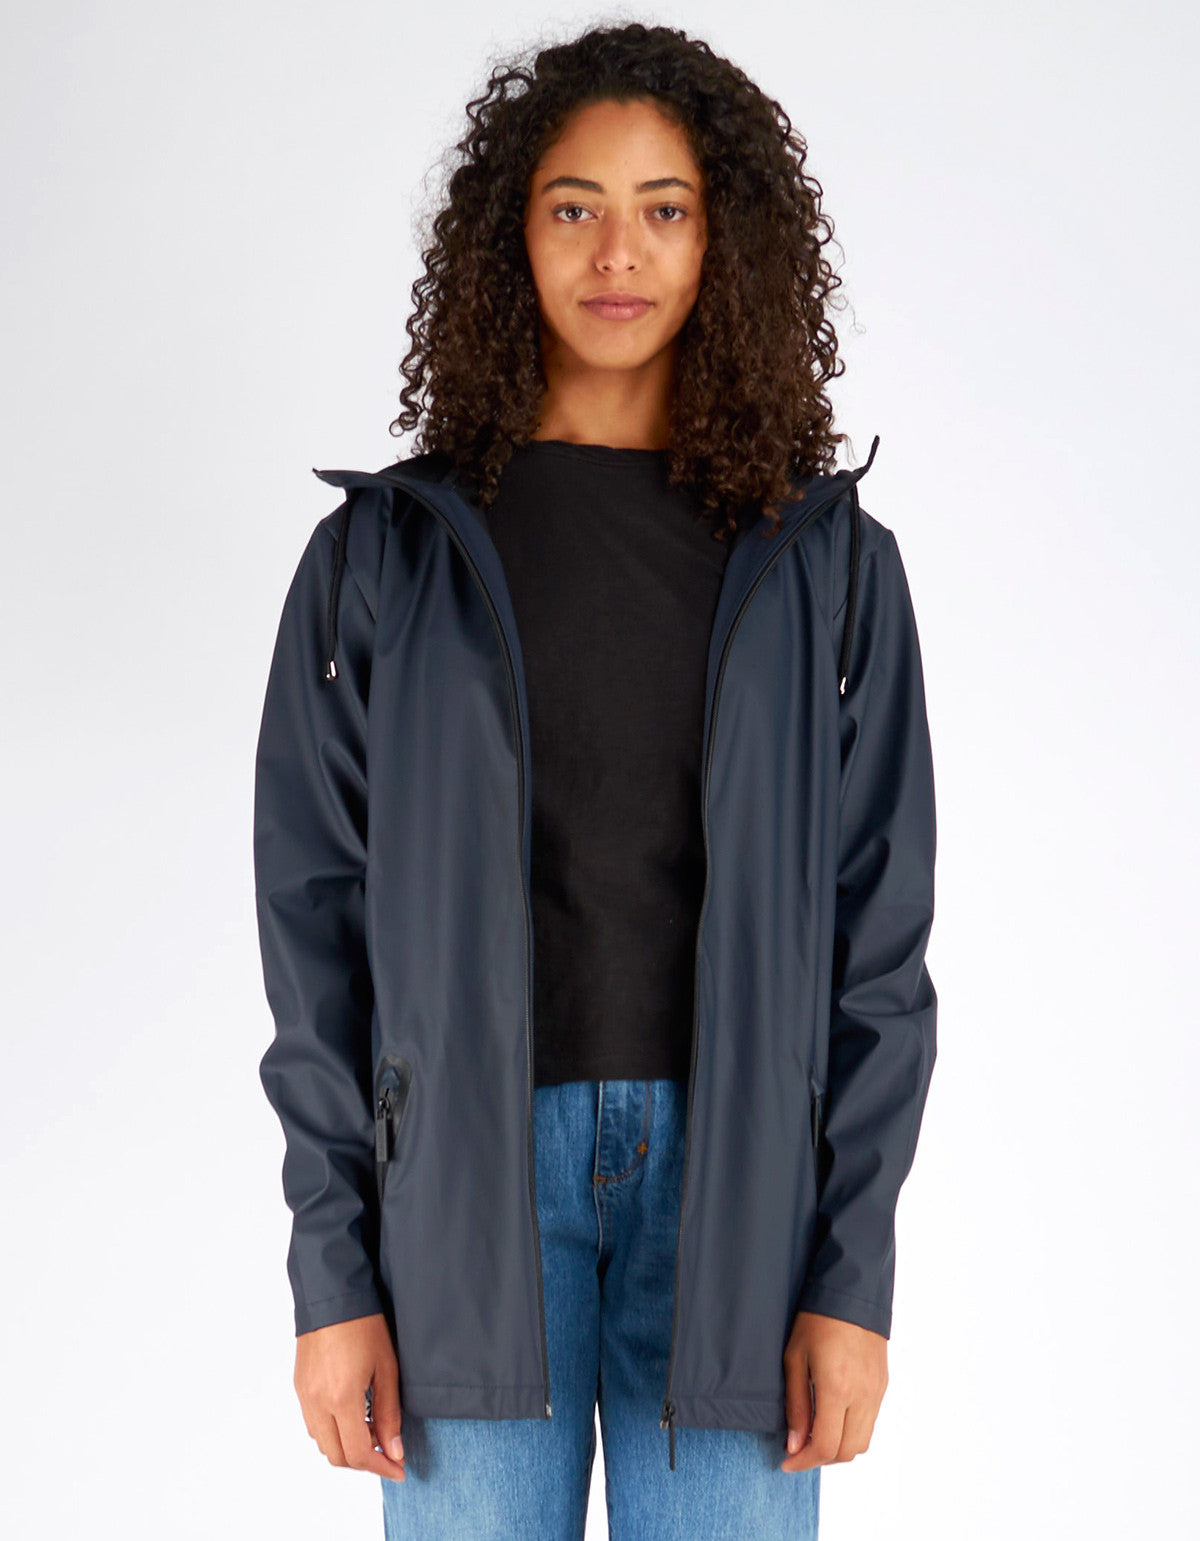 Rains Women's Breaker Jacket Black - Still Life - 1